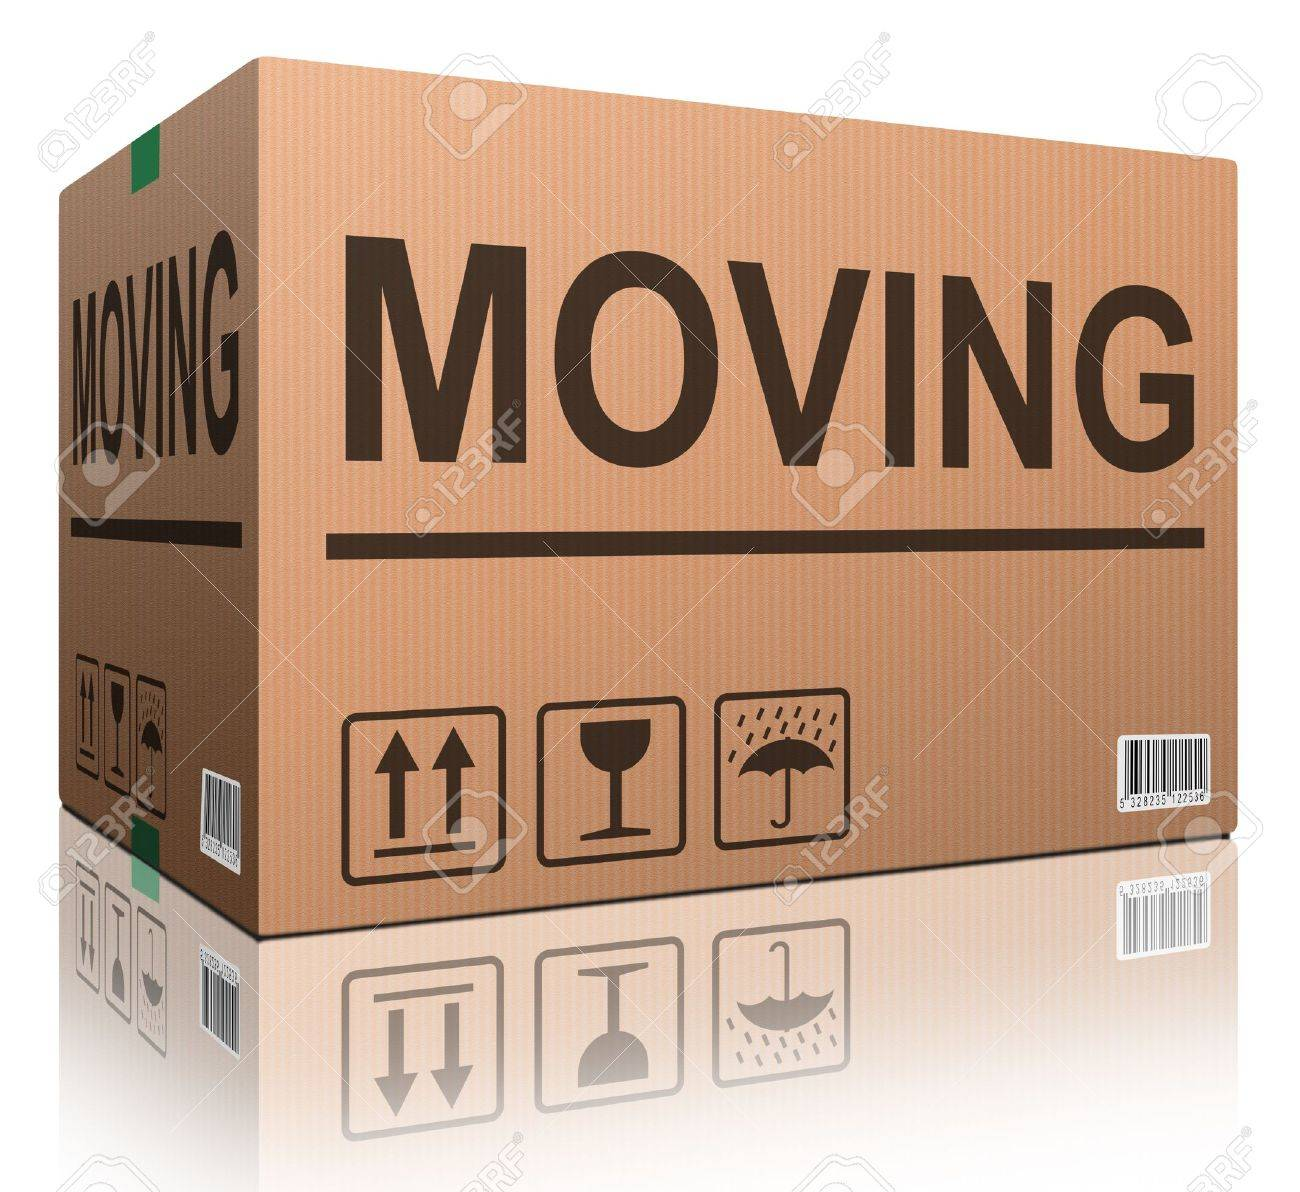 moving box cardboard brown package text relocation stock stock photo moving box cardboard brown package text relocation